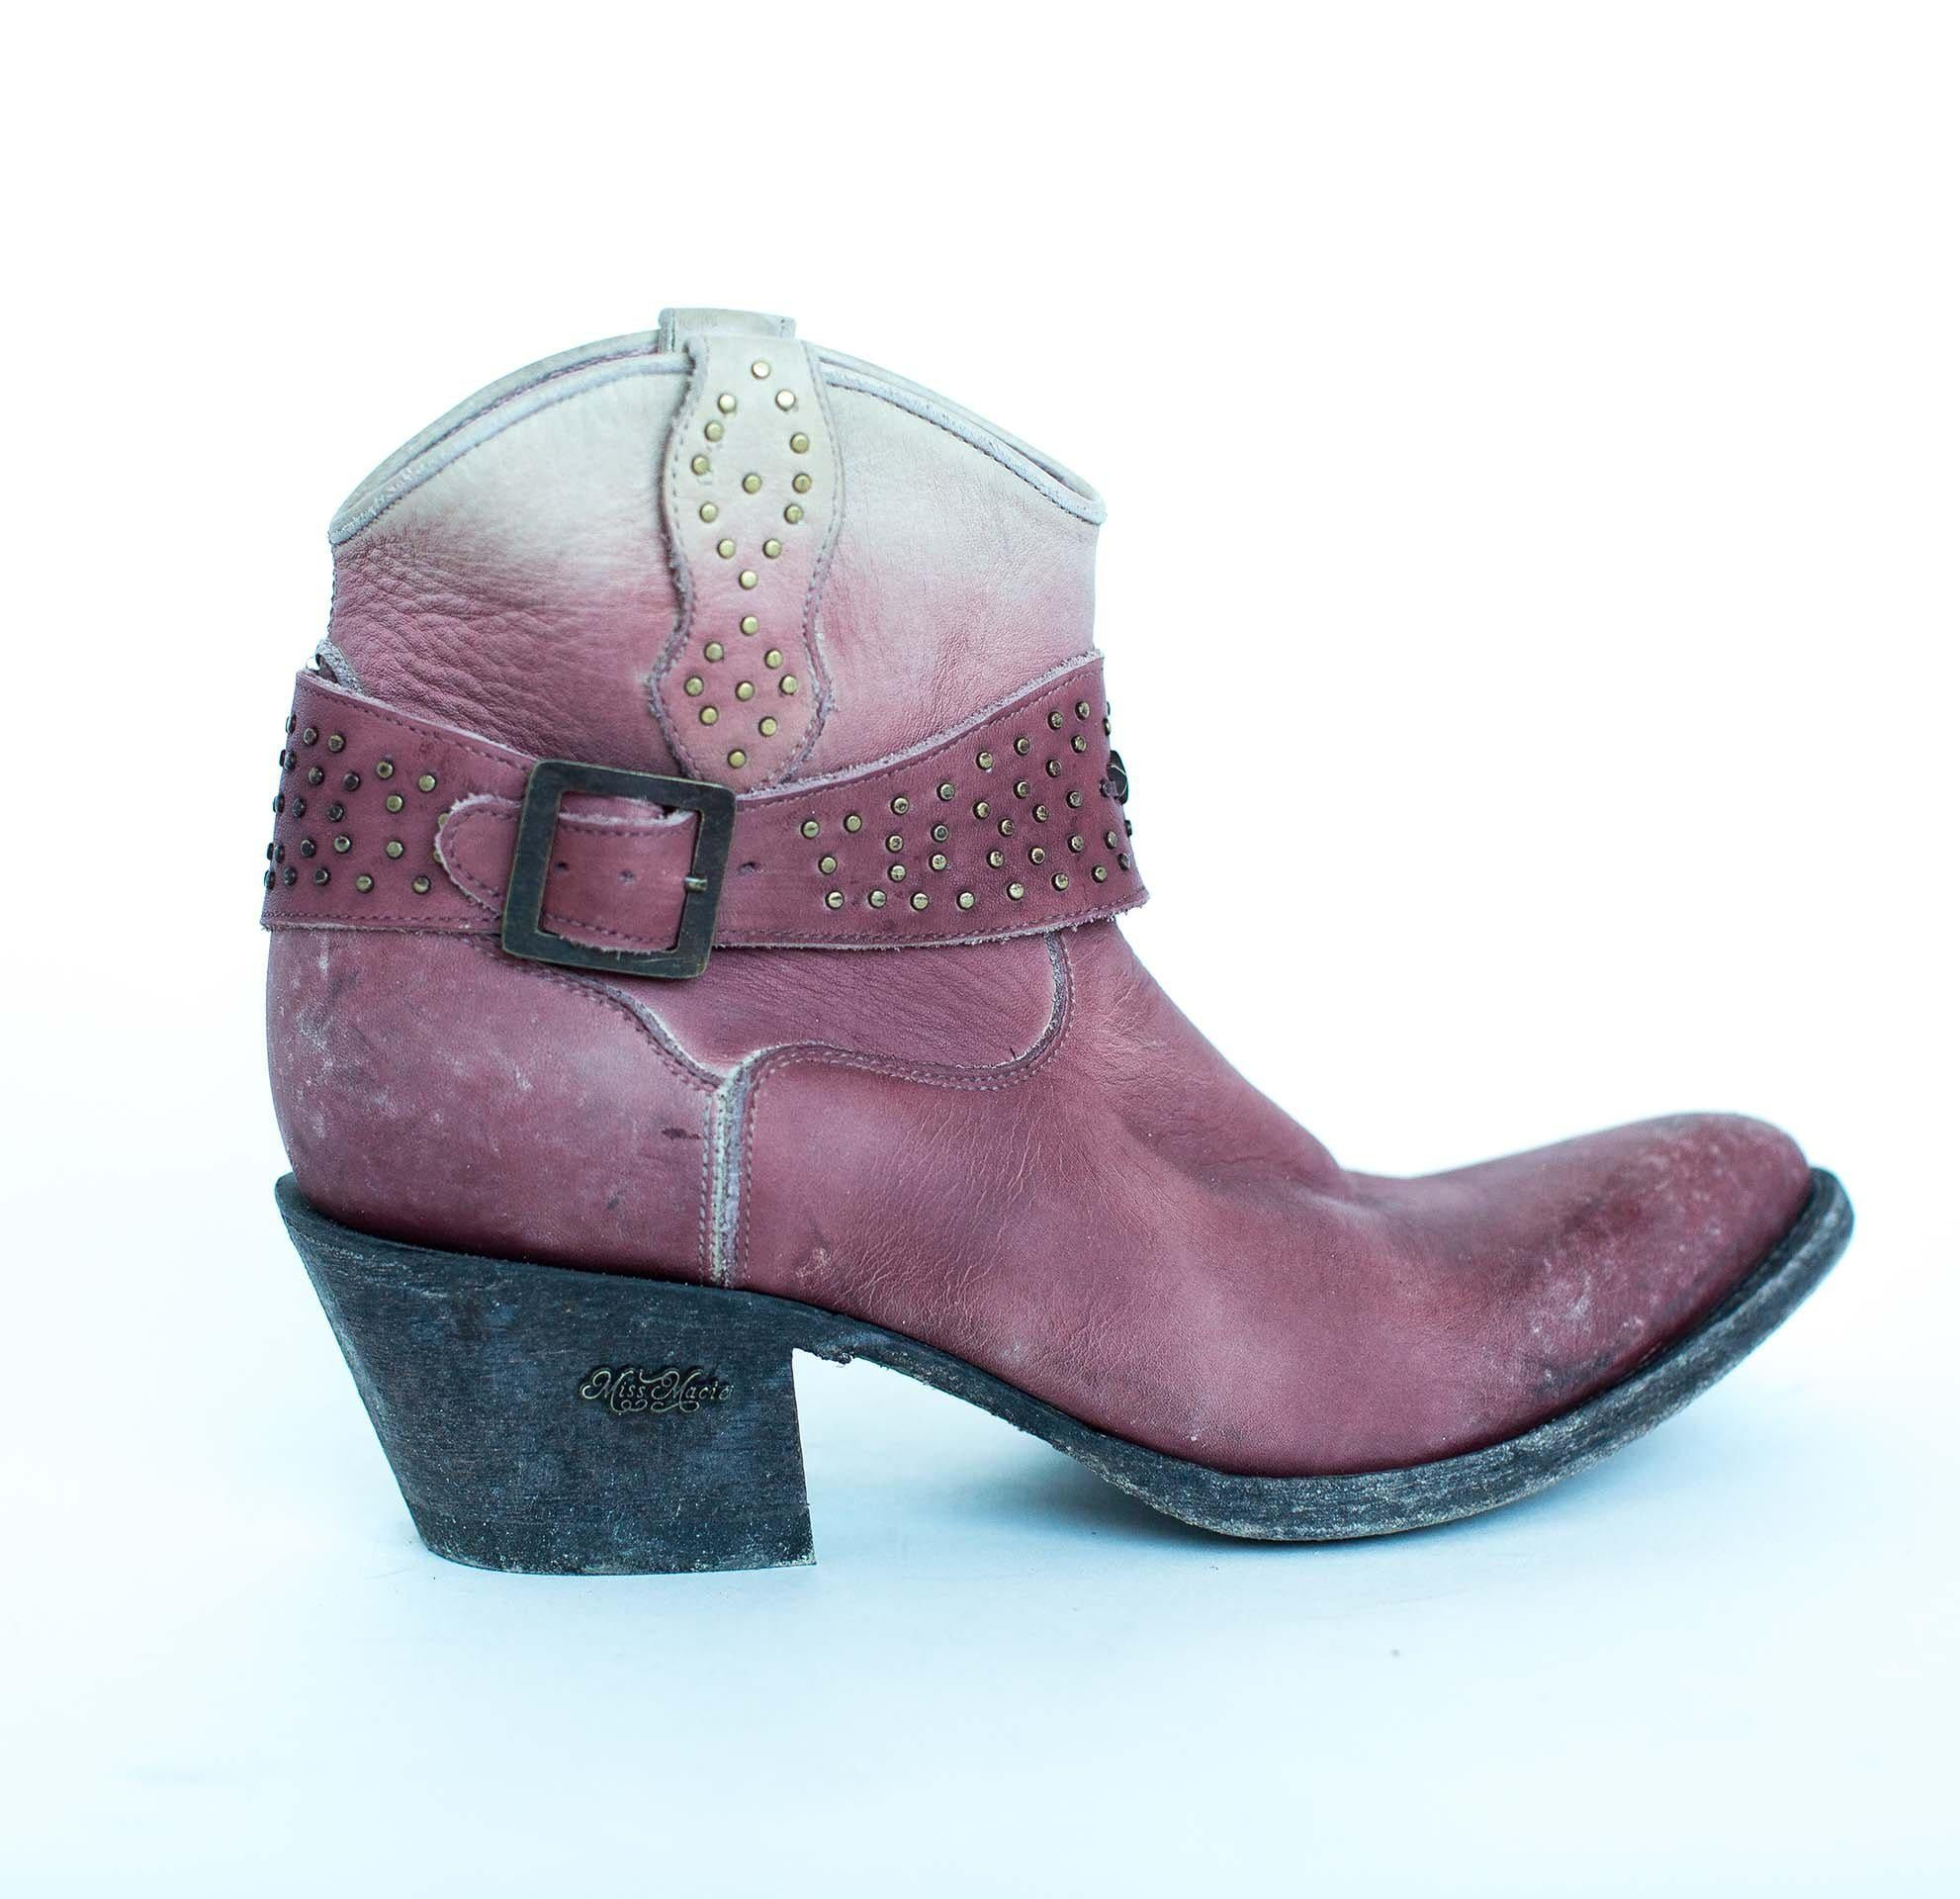 Miss Macie Boots Inspired Collection - Fine n' Dandy in Cream/Blush